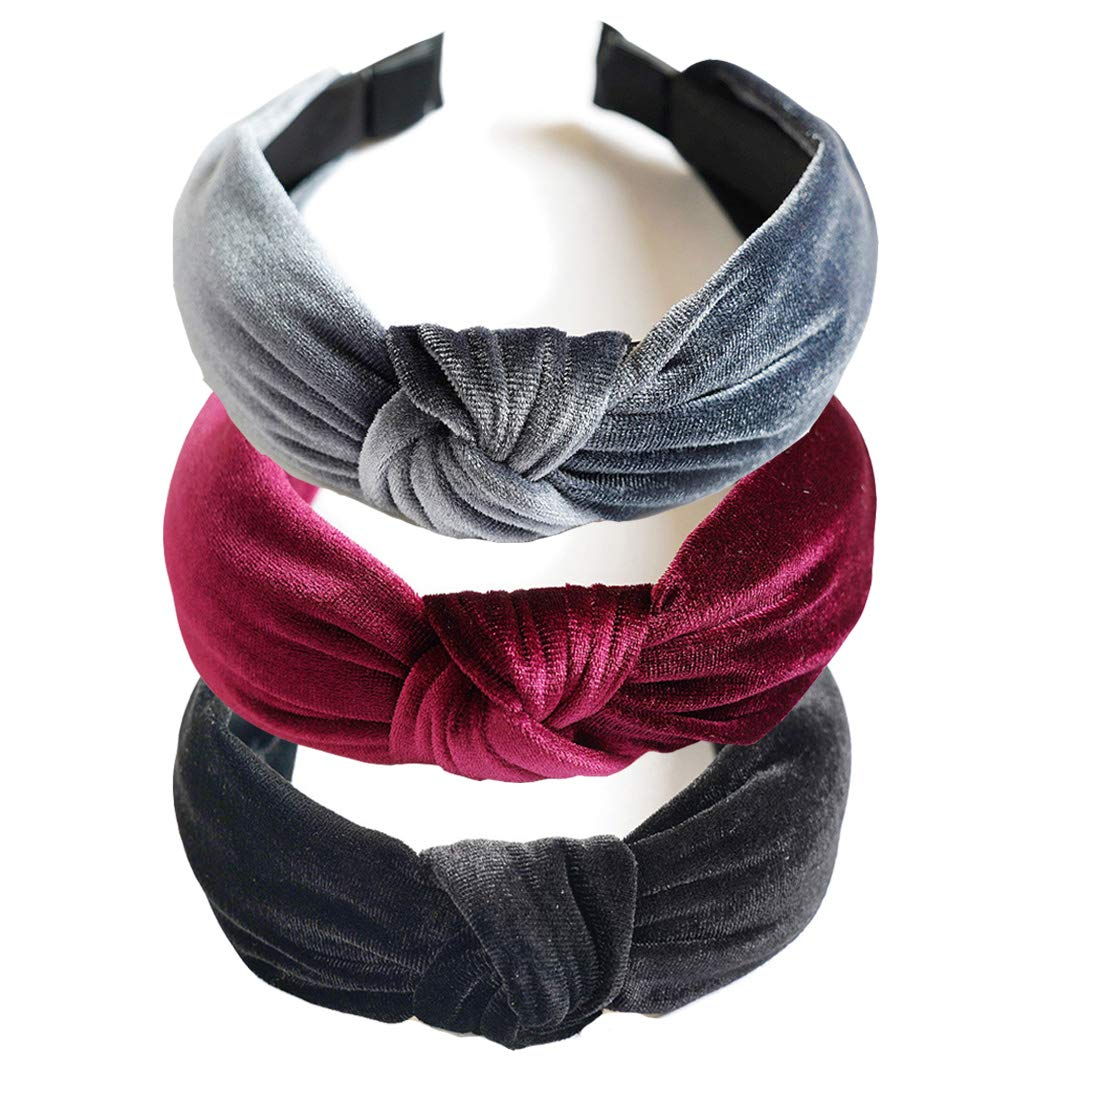 Simply Vera Wang Twist Cable Knit Headwrap for Women One Size Fashion Headband